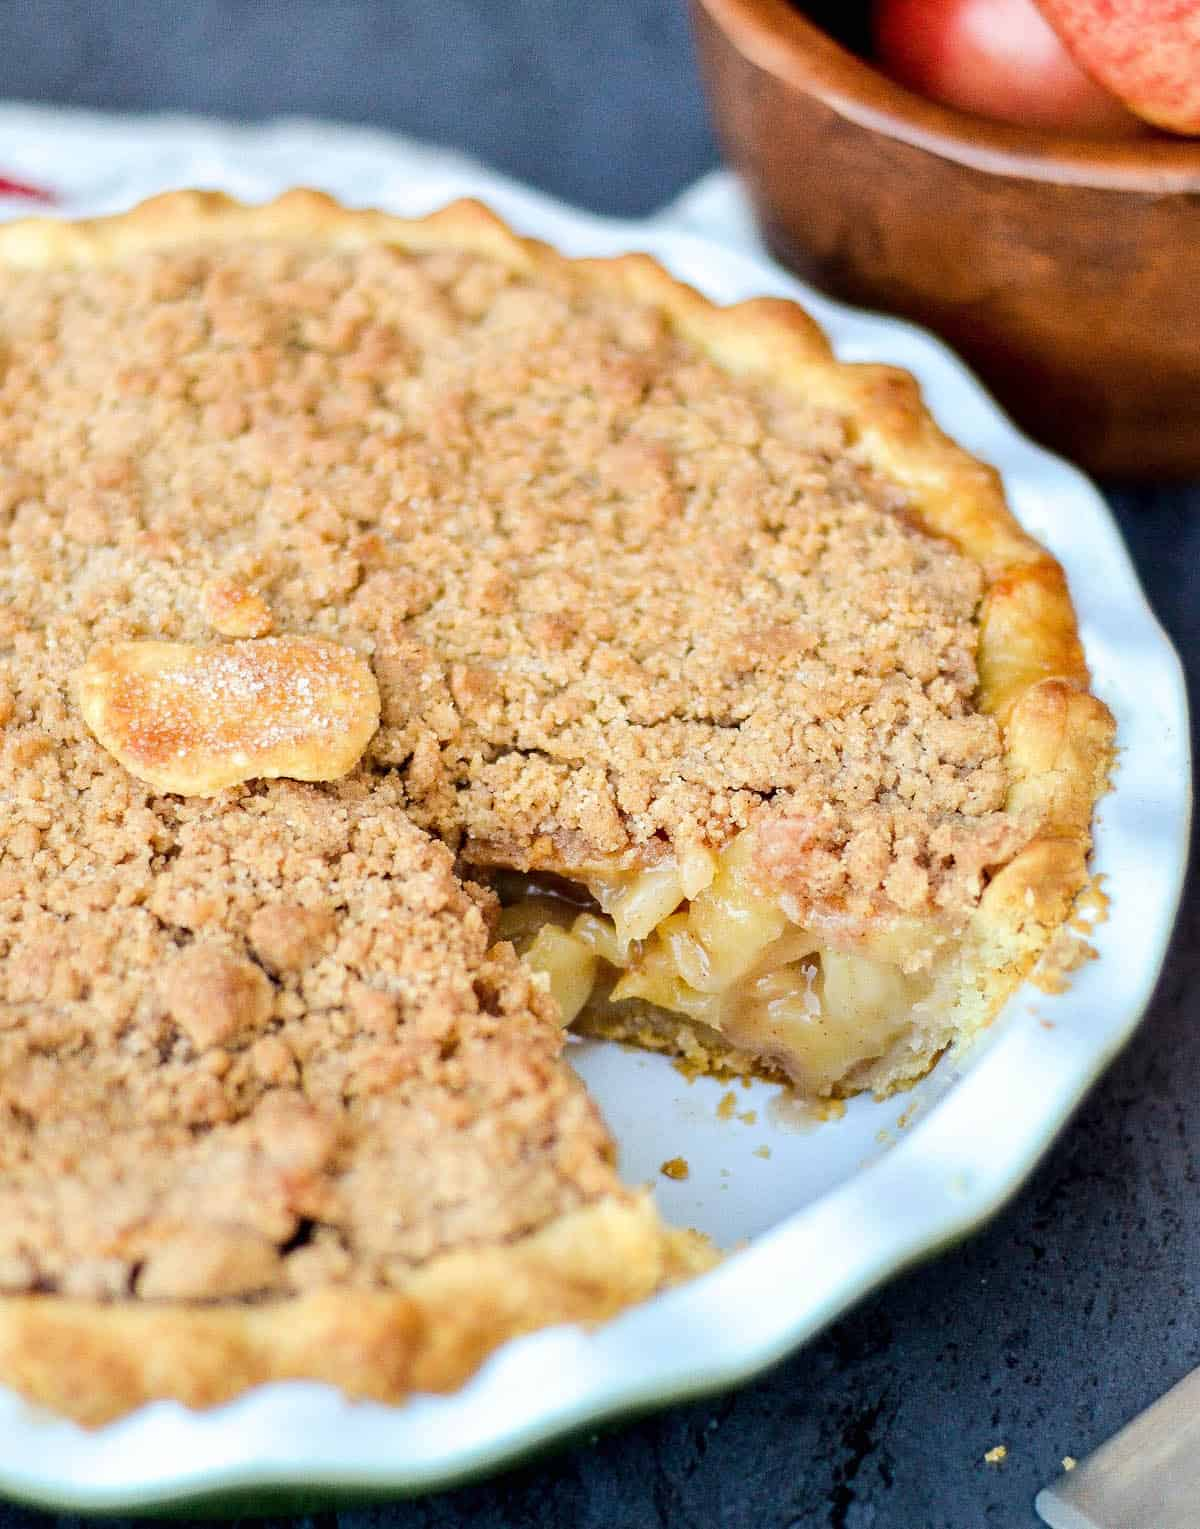 Front view of homemade apple crumble pie in a pie dish with a piece removed.